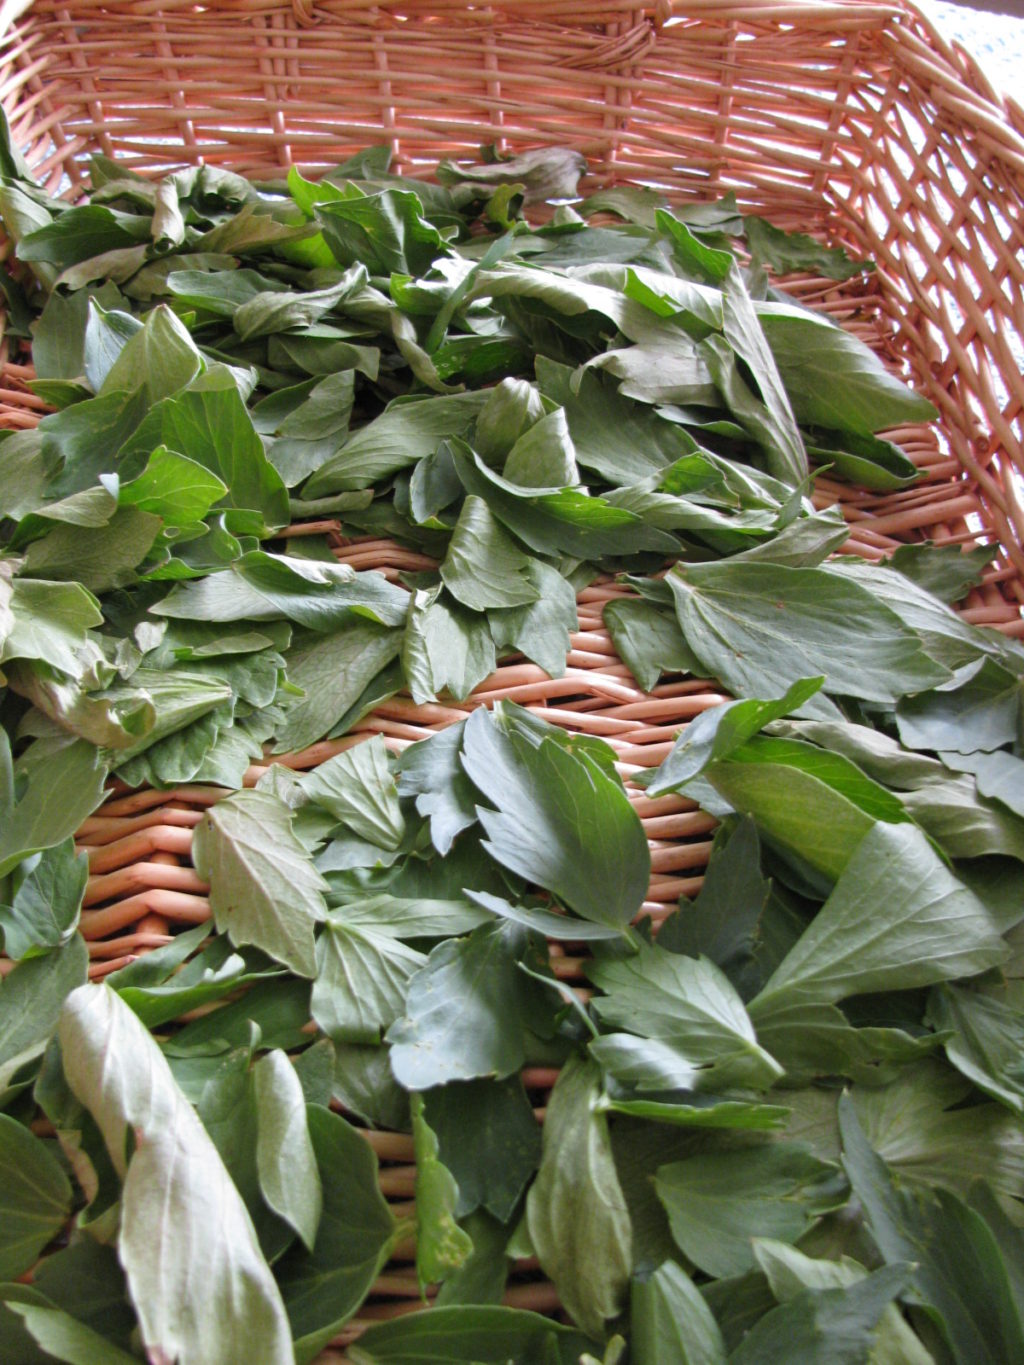 How to Dry Herbs Without a Dehydrator #herbs #cooking #dehydrating